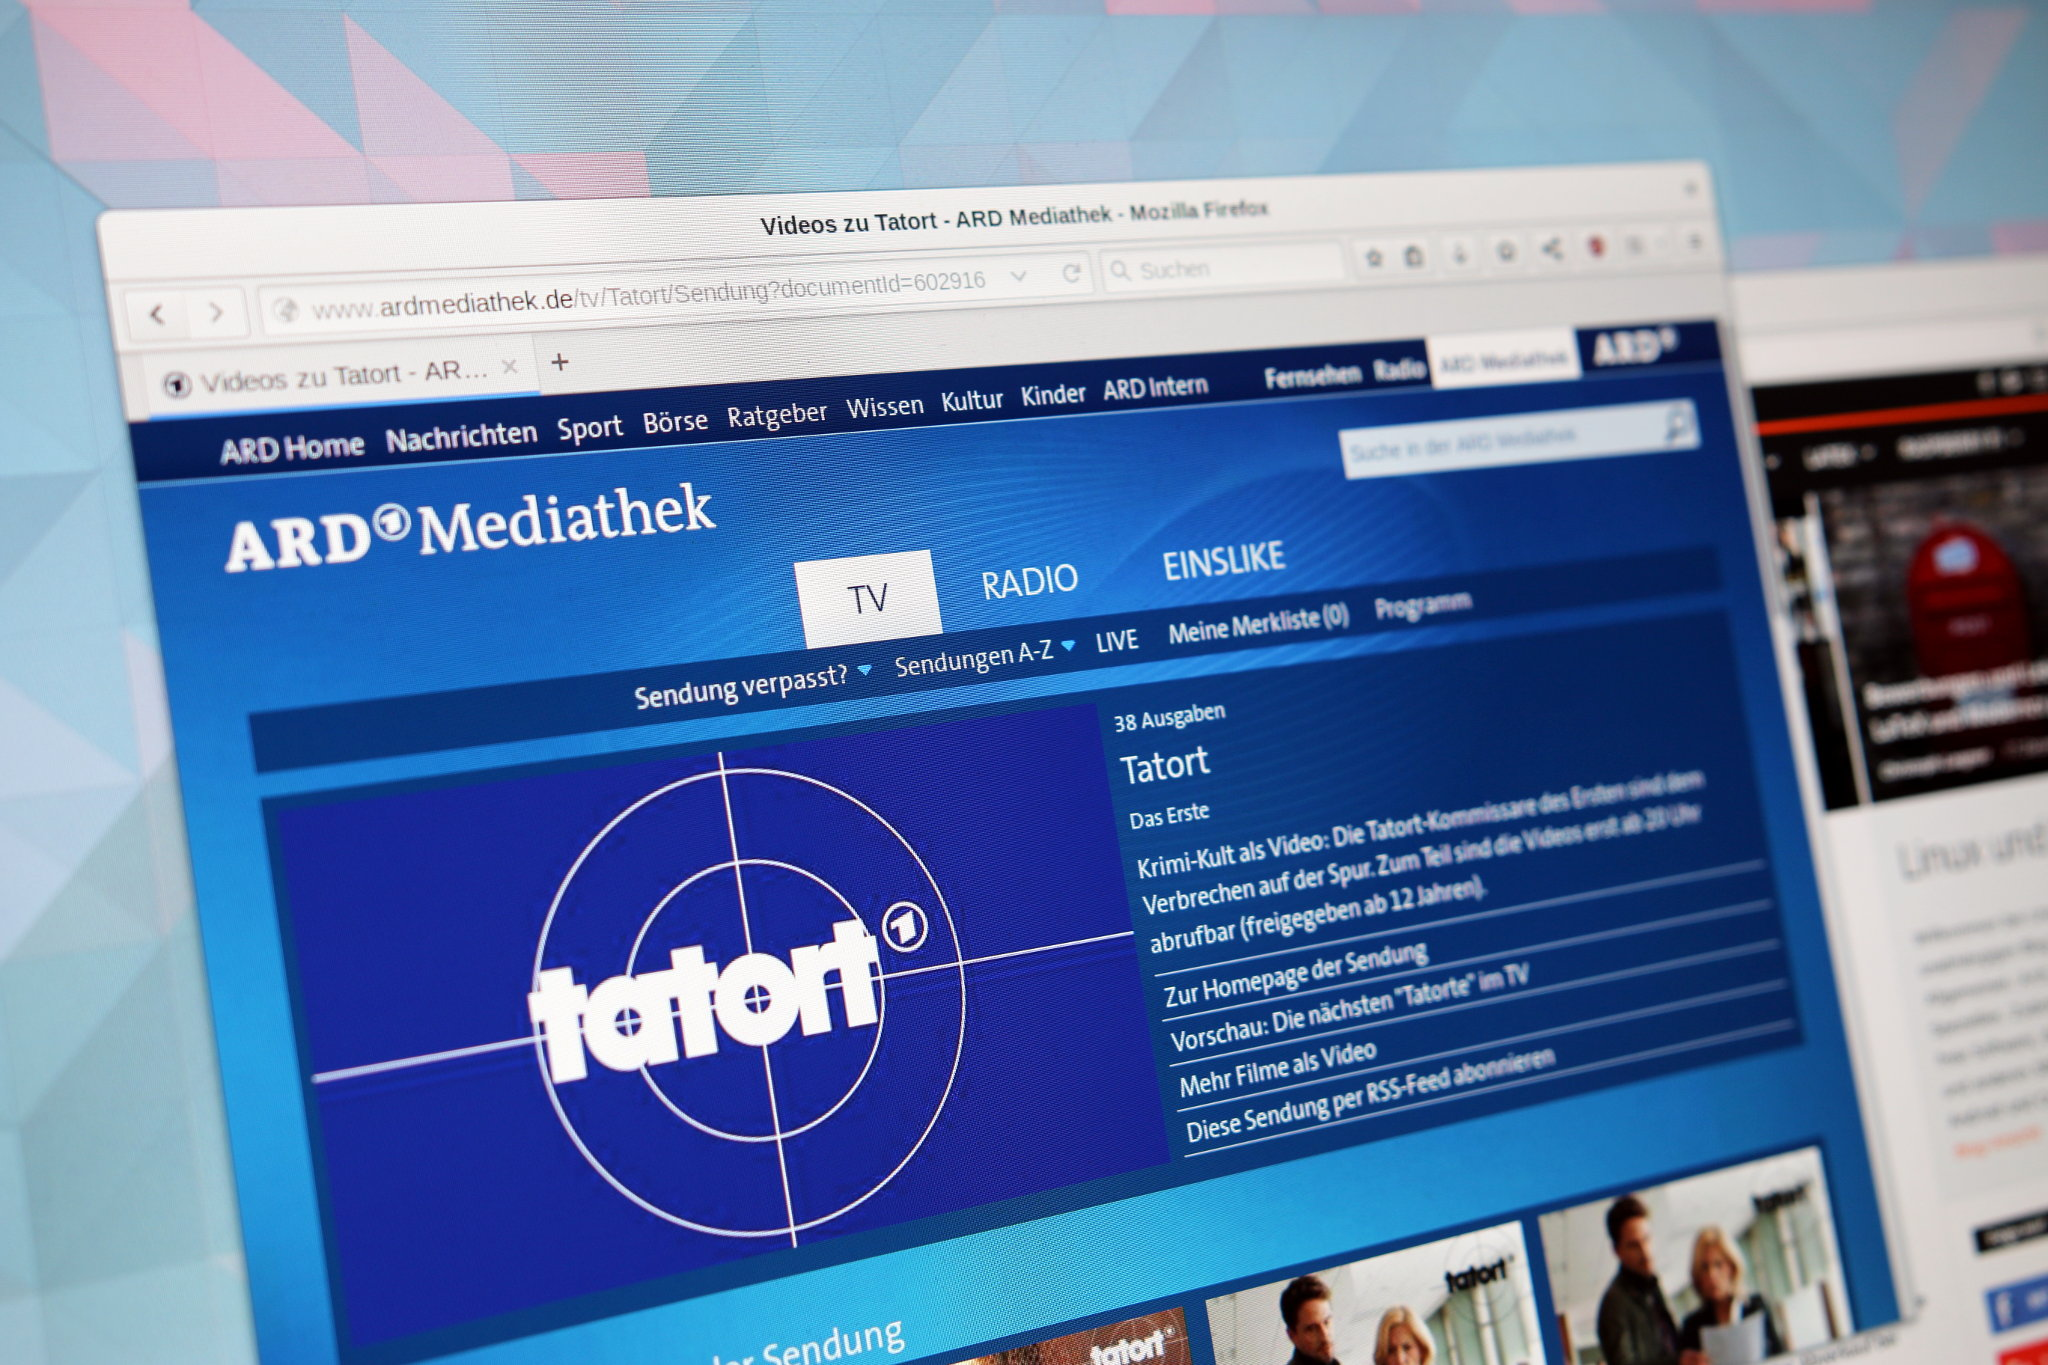 Ard-Mediathek Tatort